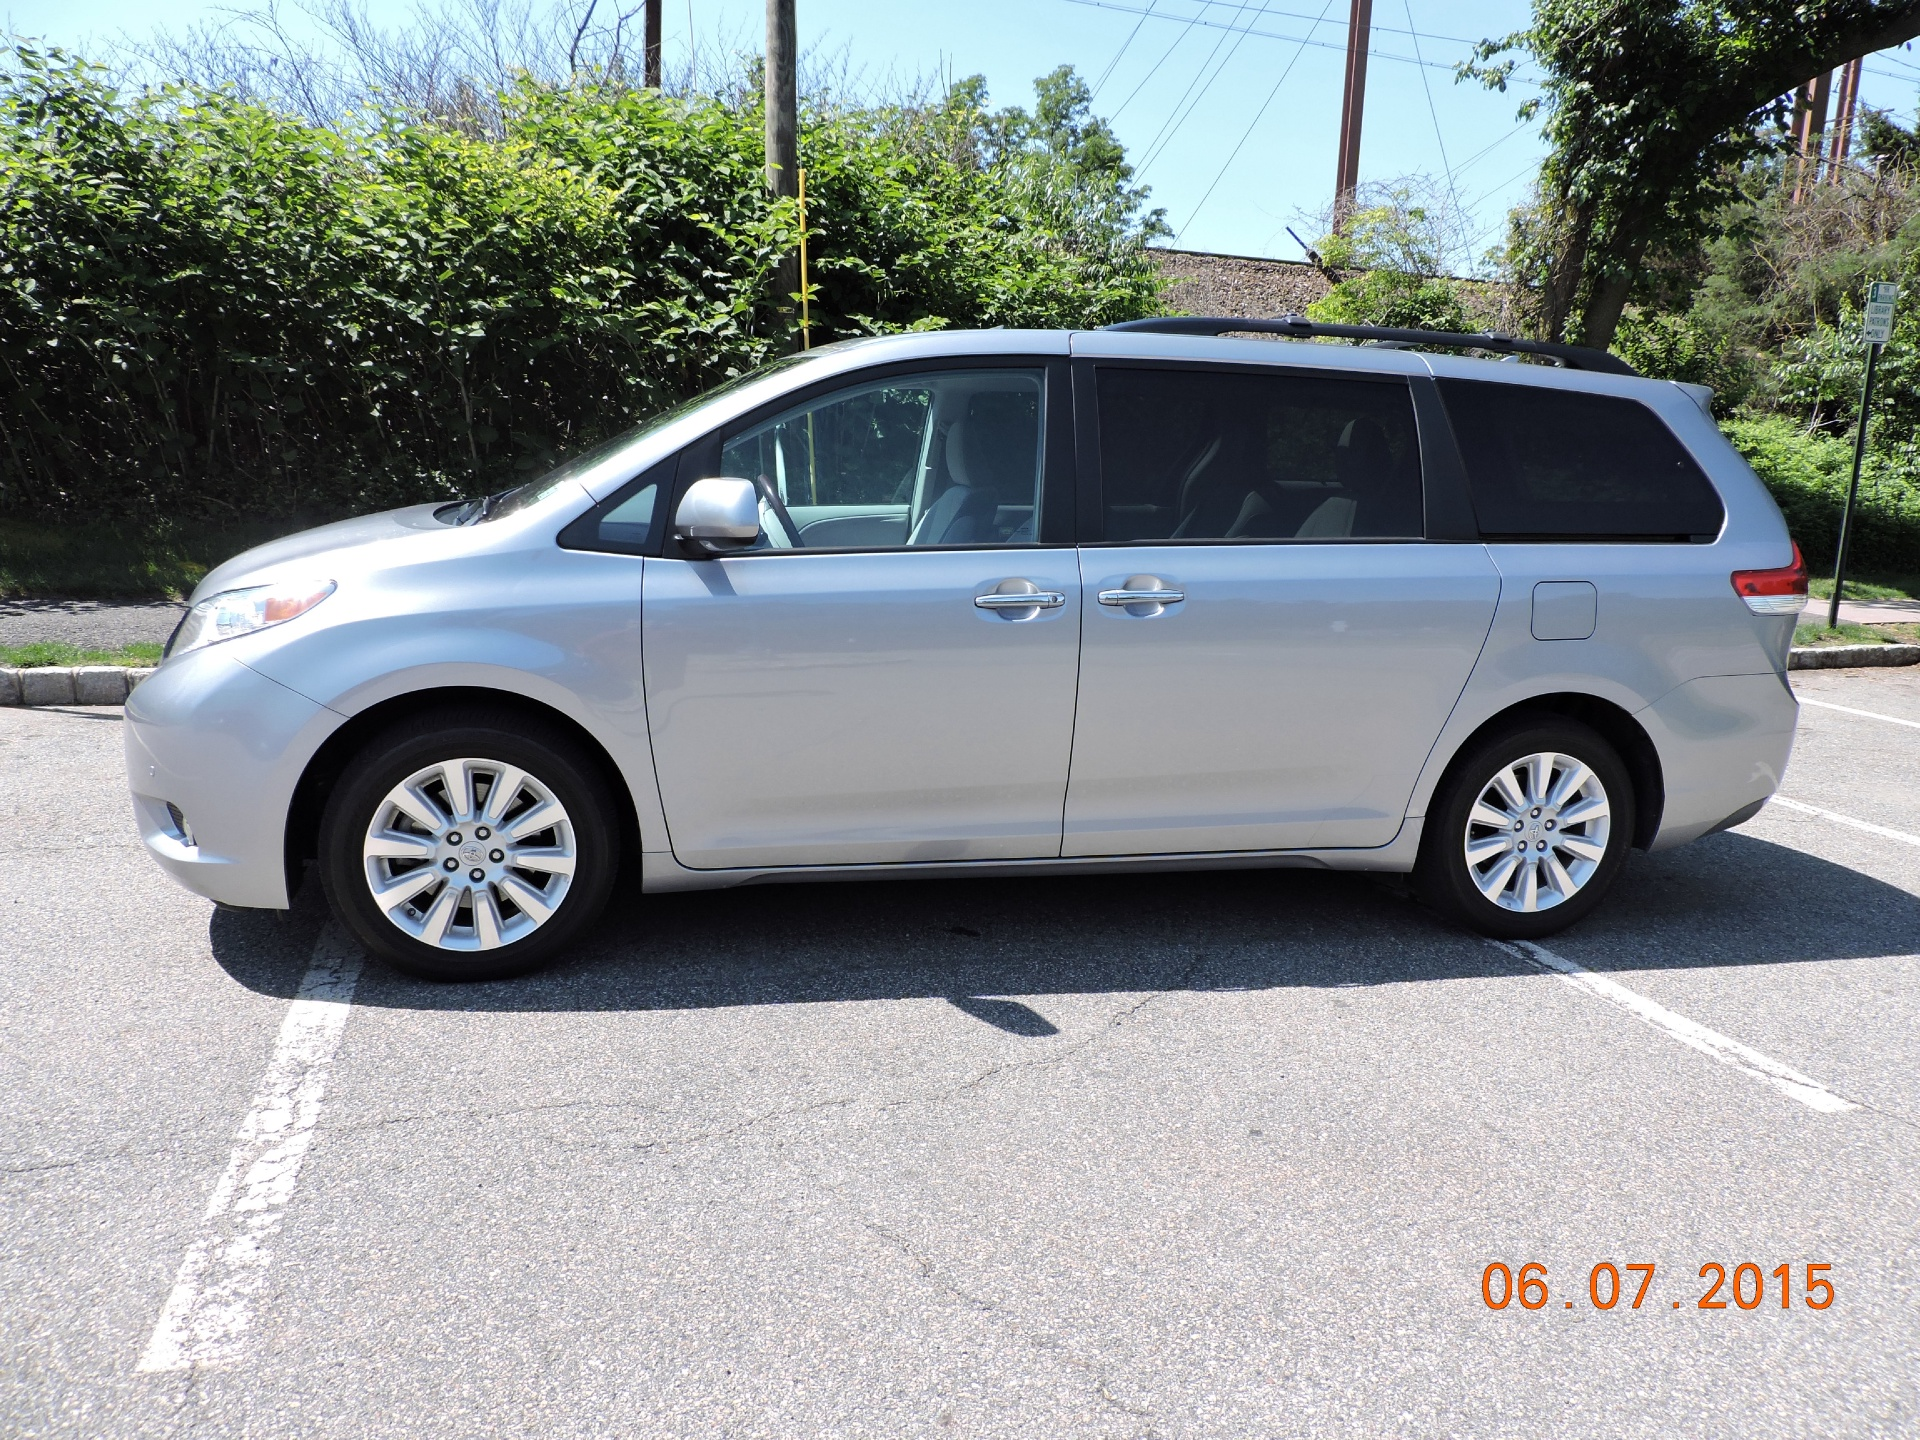 2012 toyota sienna stock toyotasienna for sale near new york ny ny toyota dealer. Black Bedroom Furniture Sets. Home Design Ideas